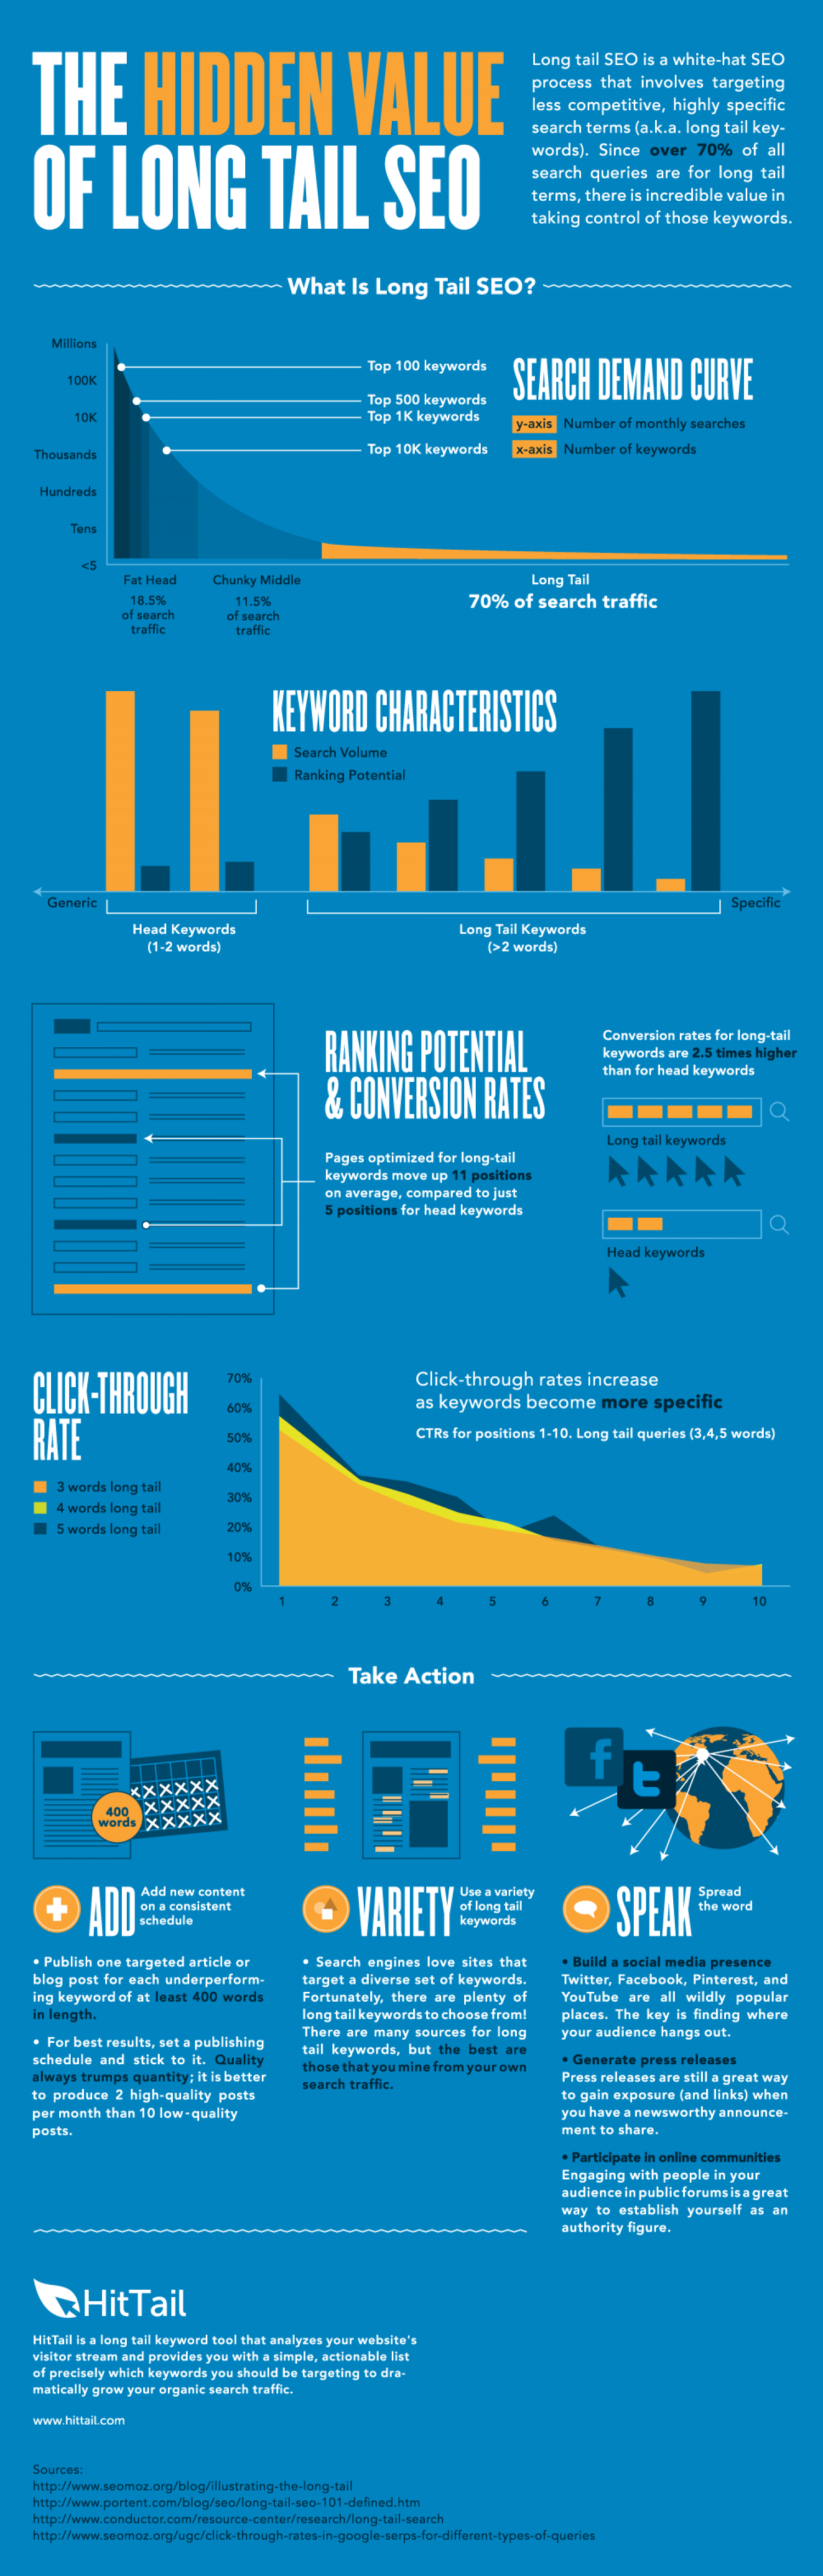 The Hidden Value of Long Tail SEO Infographic